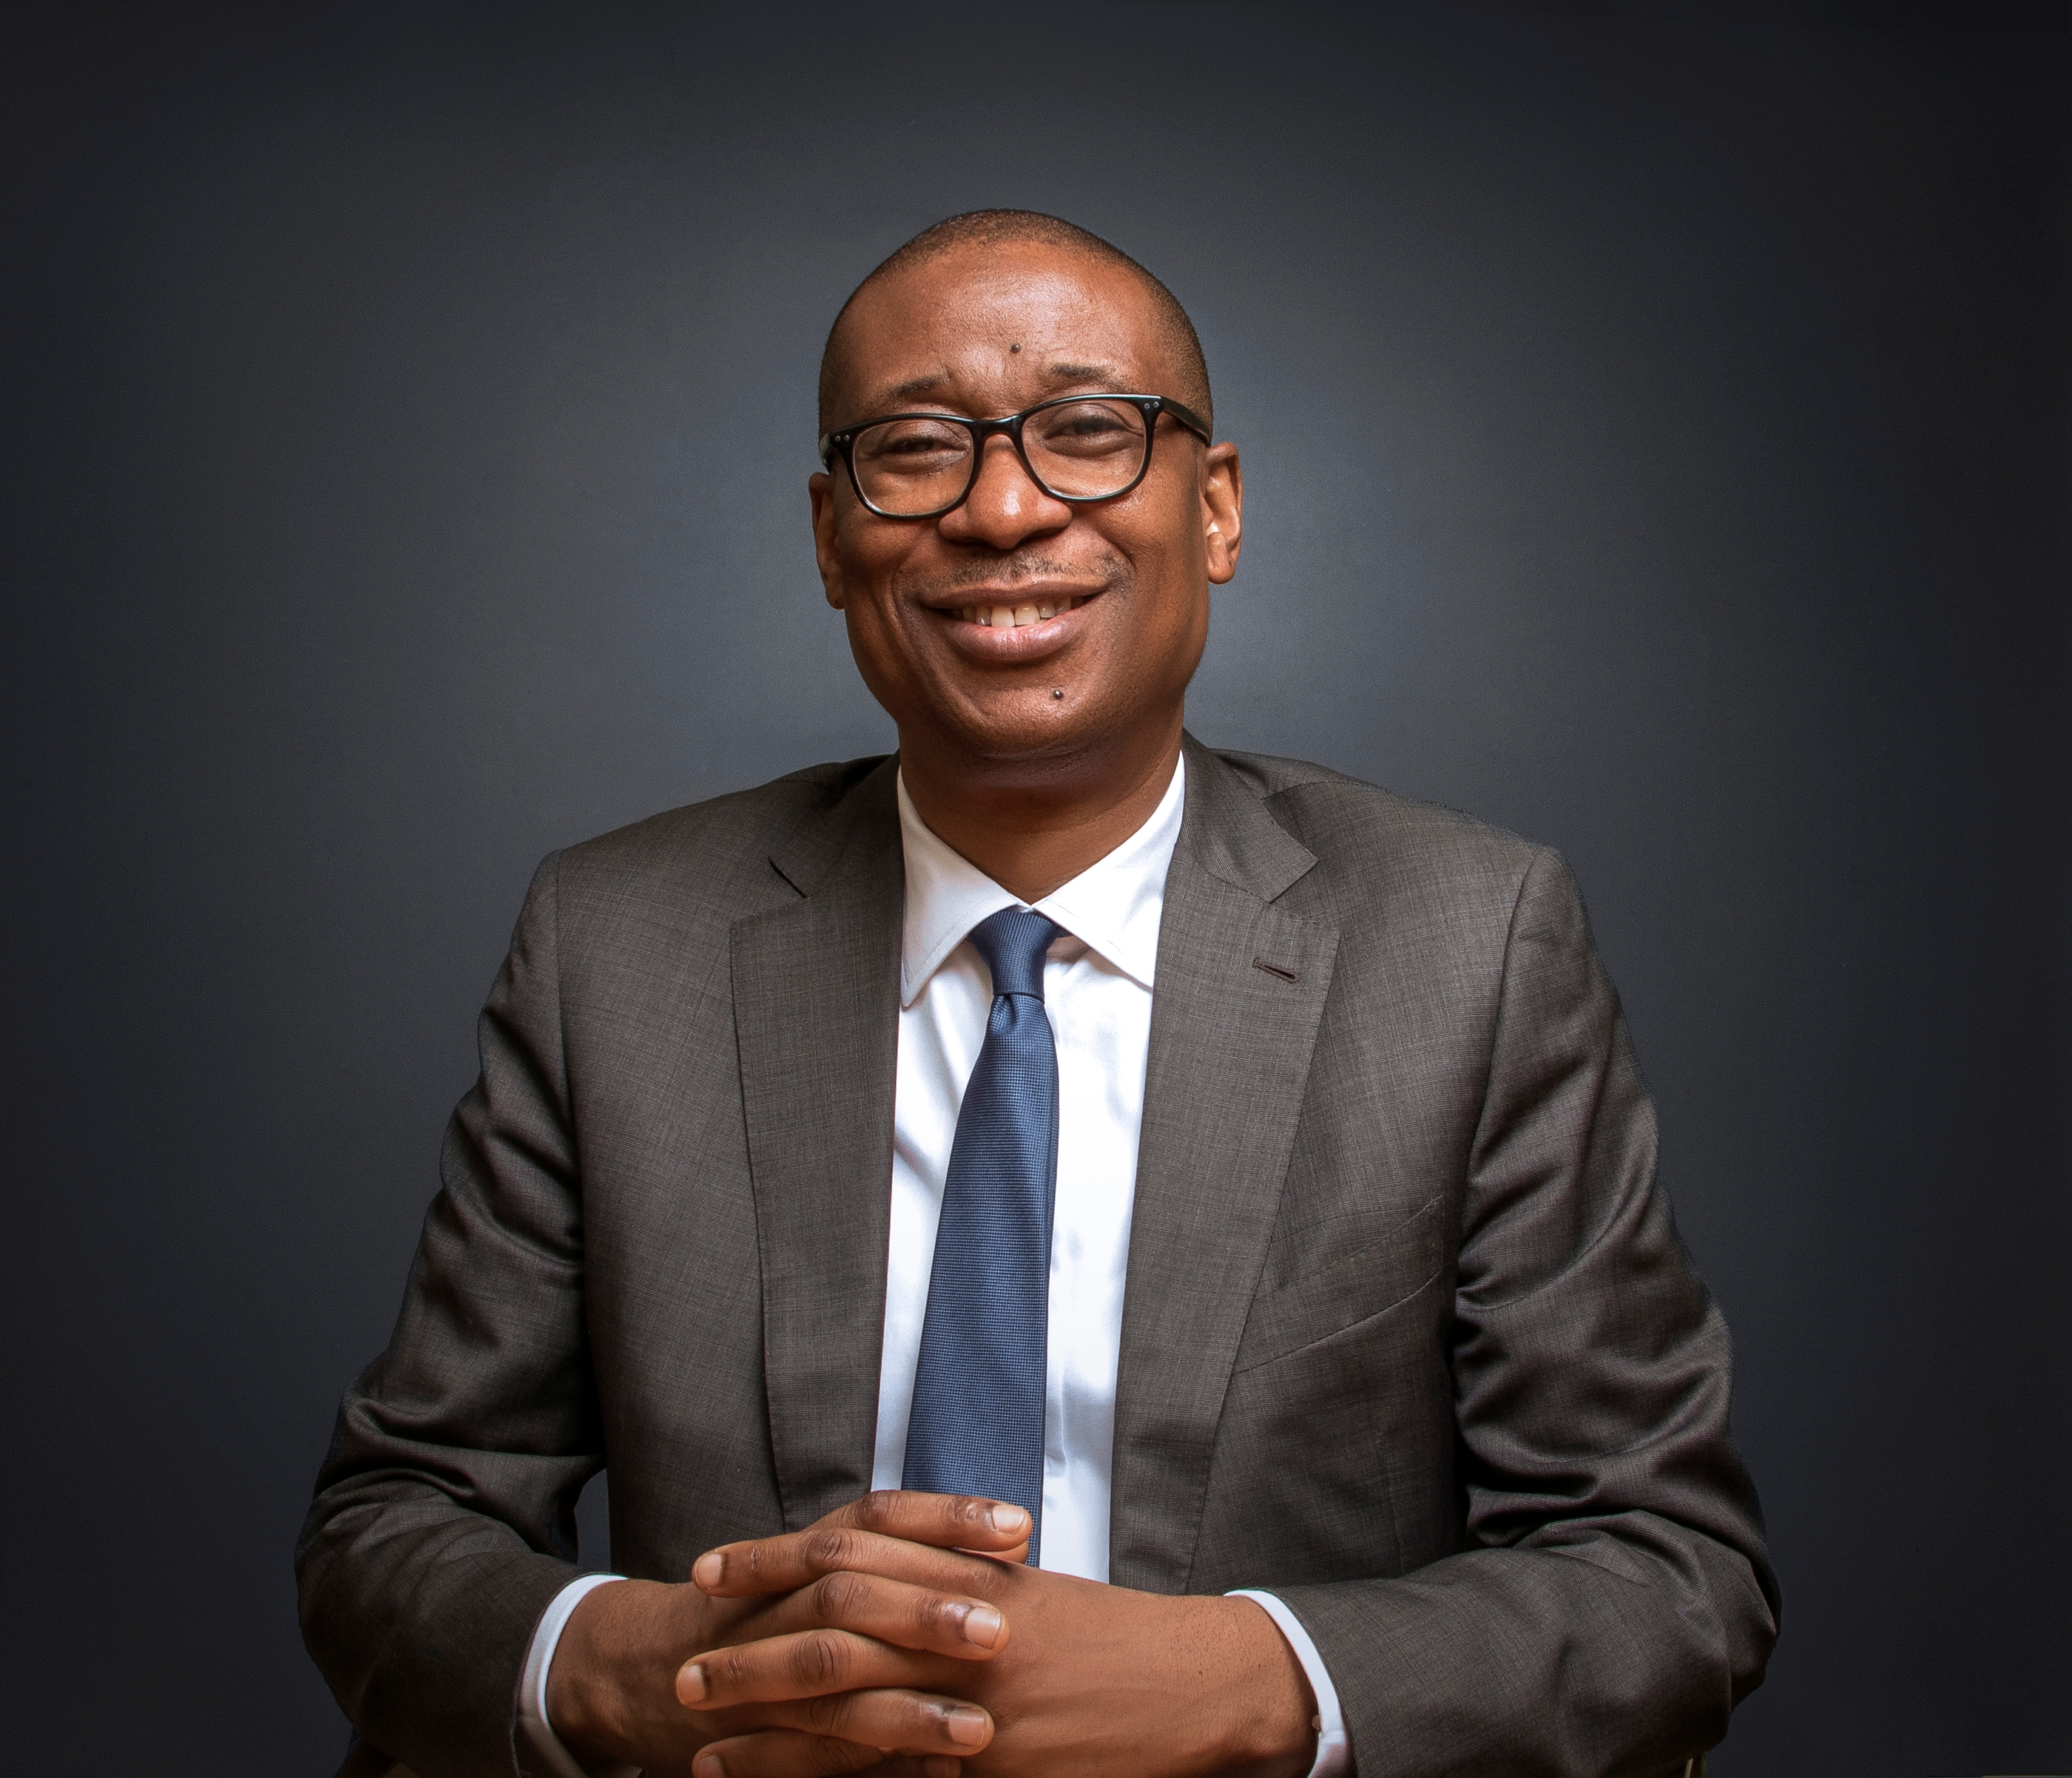 Dr. Okechukwu Enelamah - the spark youth empowerment platform in Nigeria